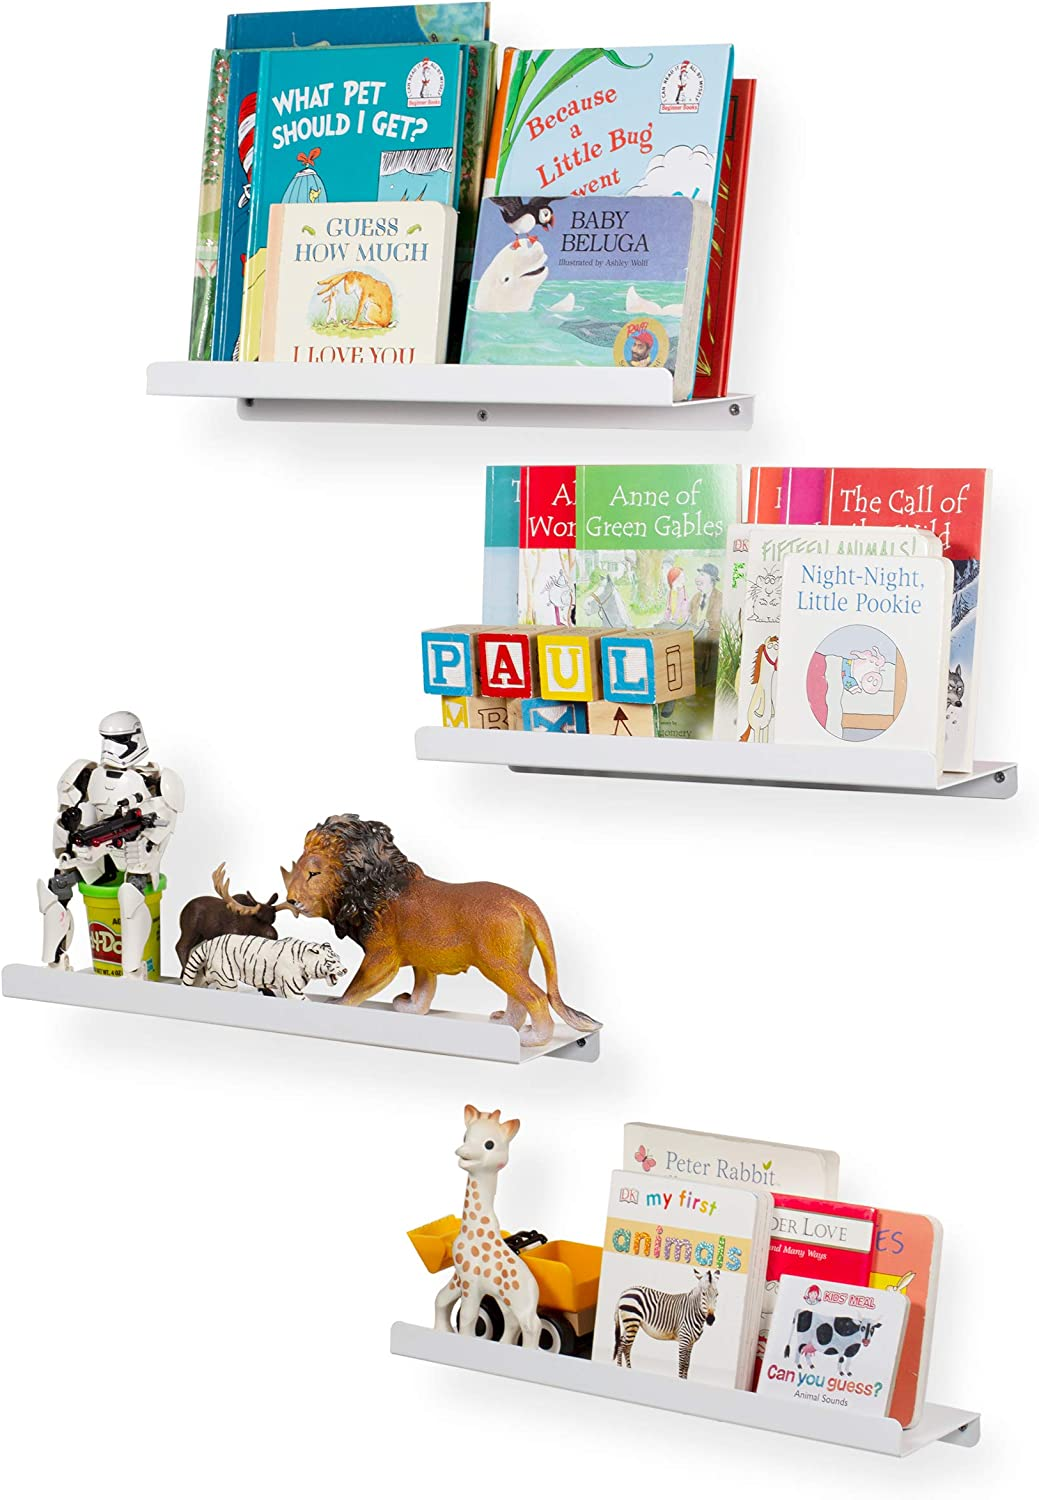 Wall Mount Kids' Room 17 Inch Floating Shelves Bookcase Display Ledges Set of 4 White